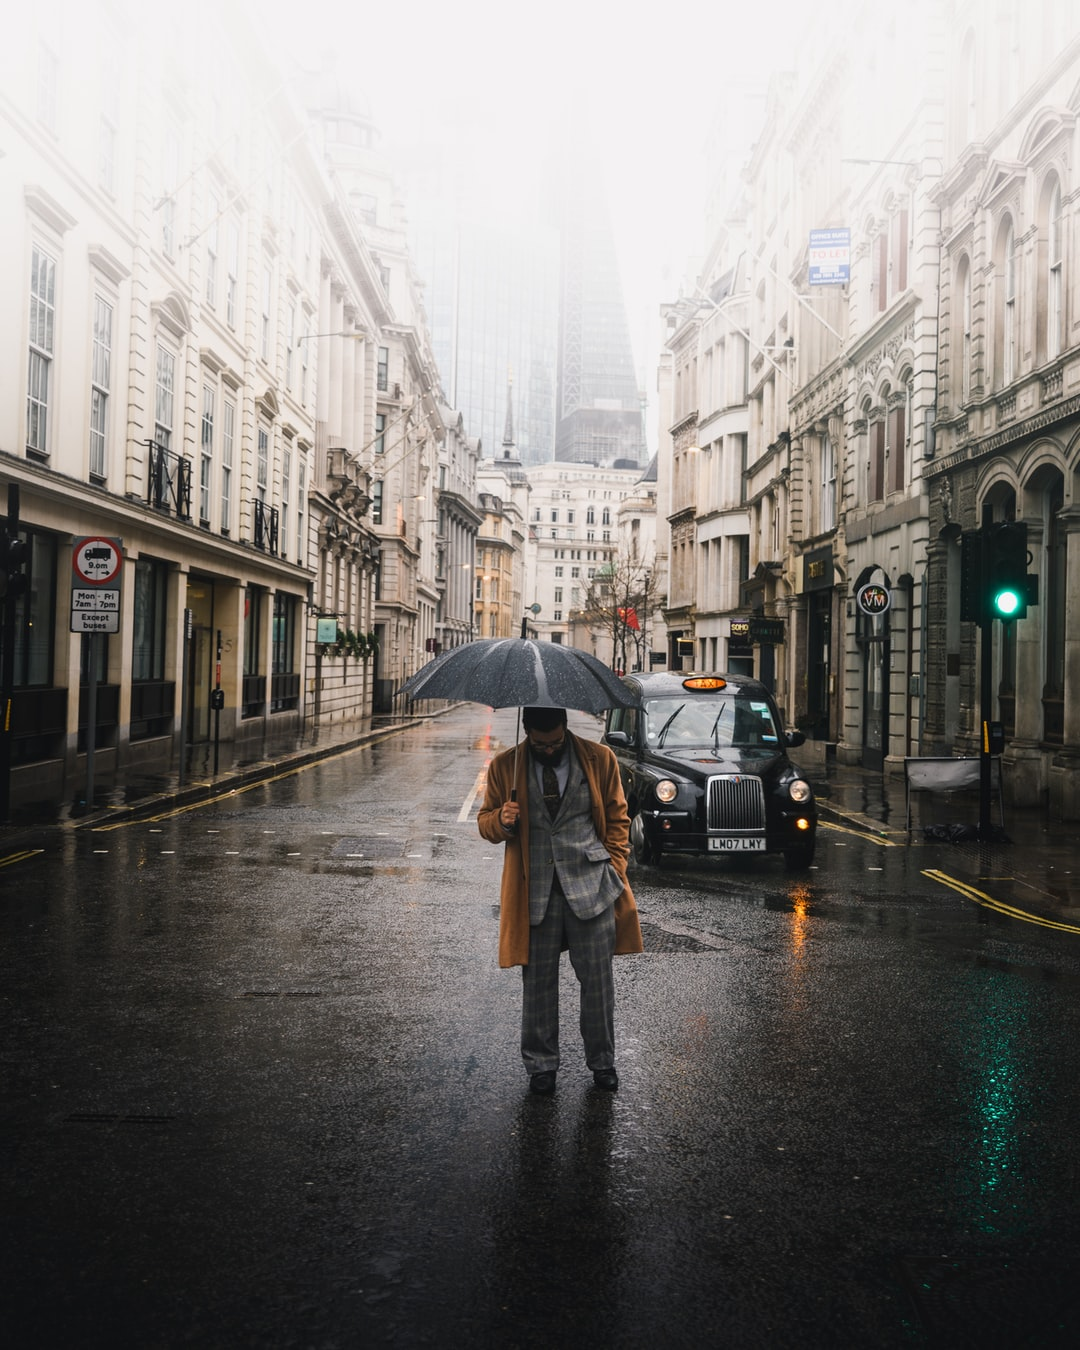 A rainy outing in the city